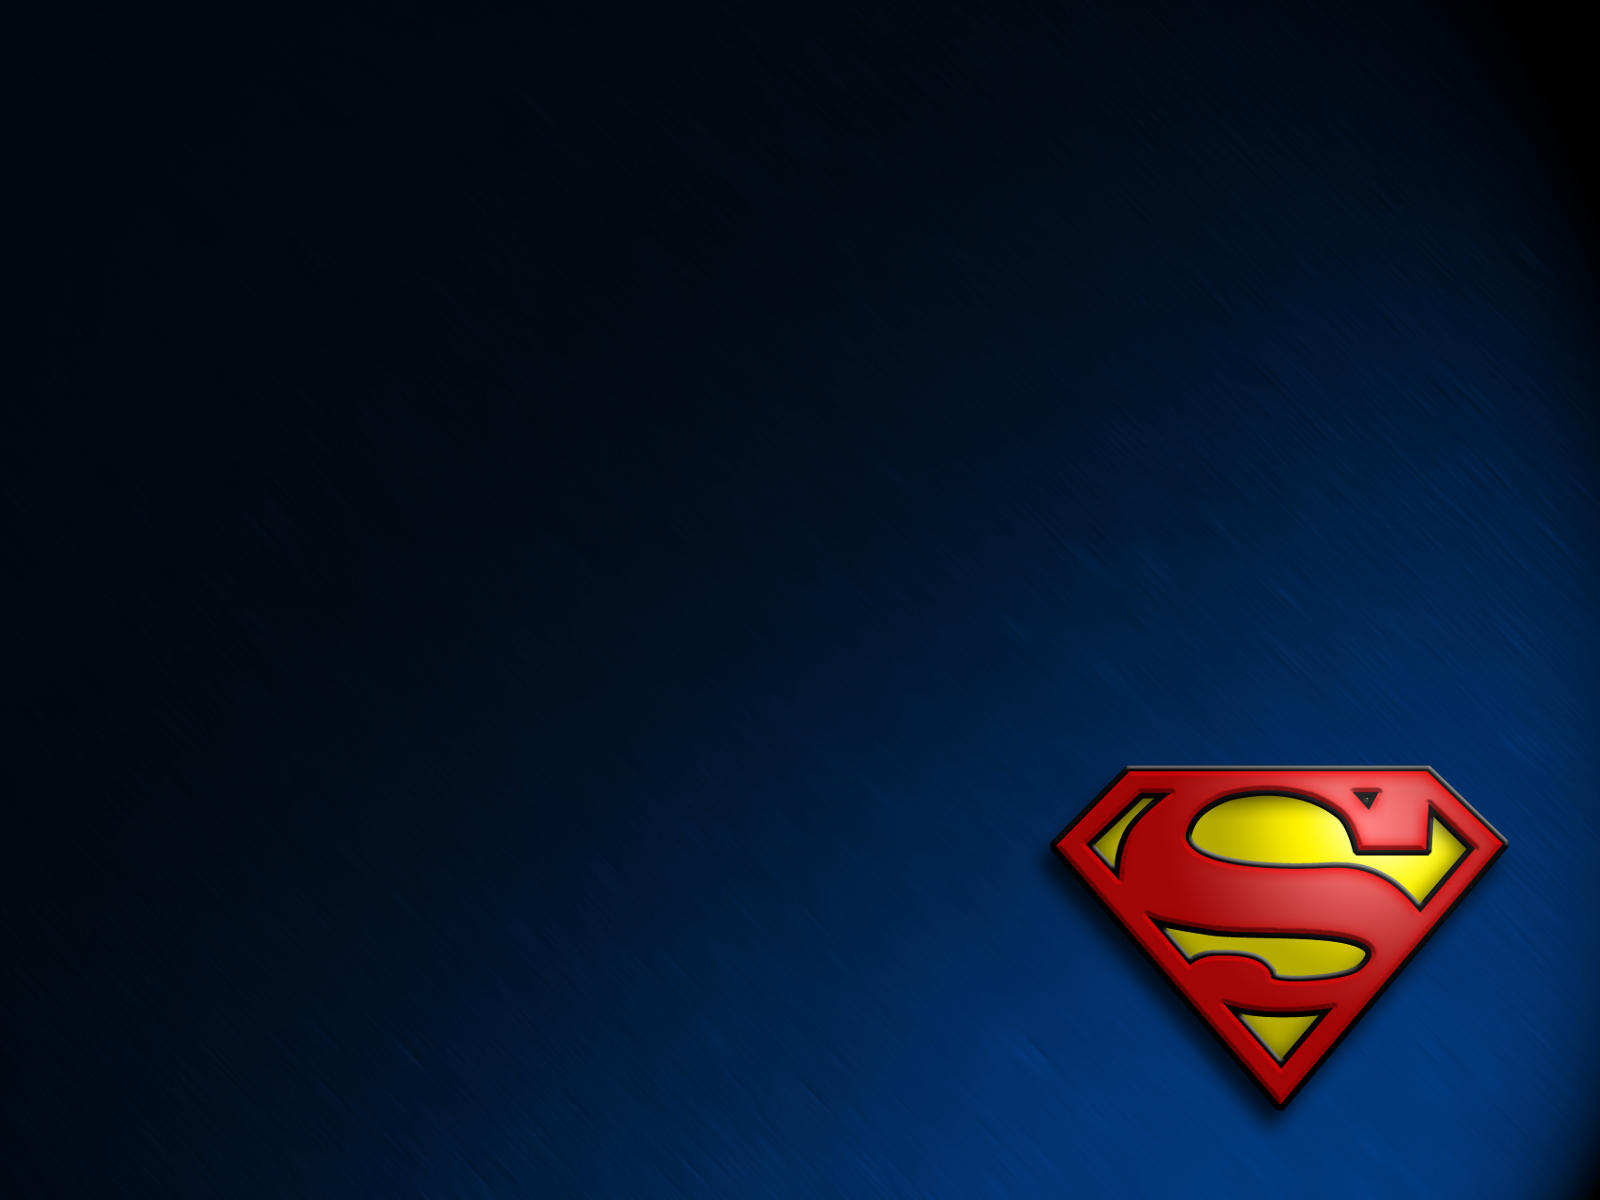 Superman Wallpaper Elegant Good For Macbook 207 Backgrounds